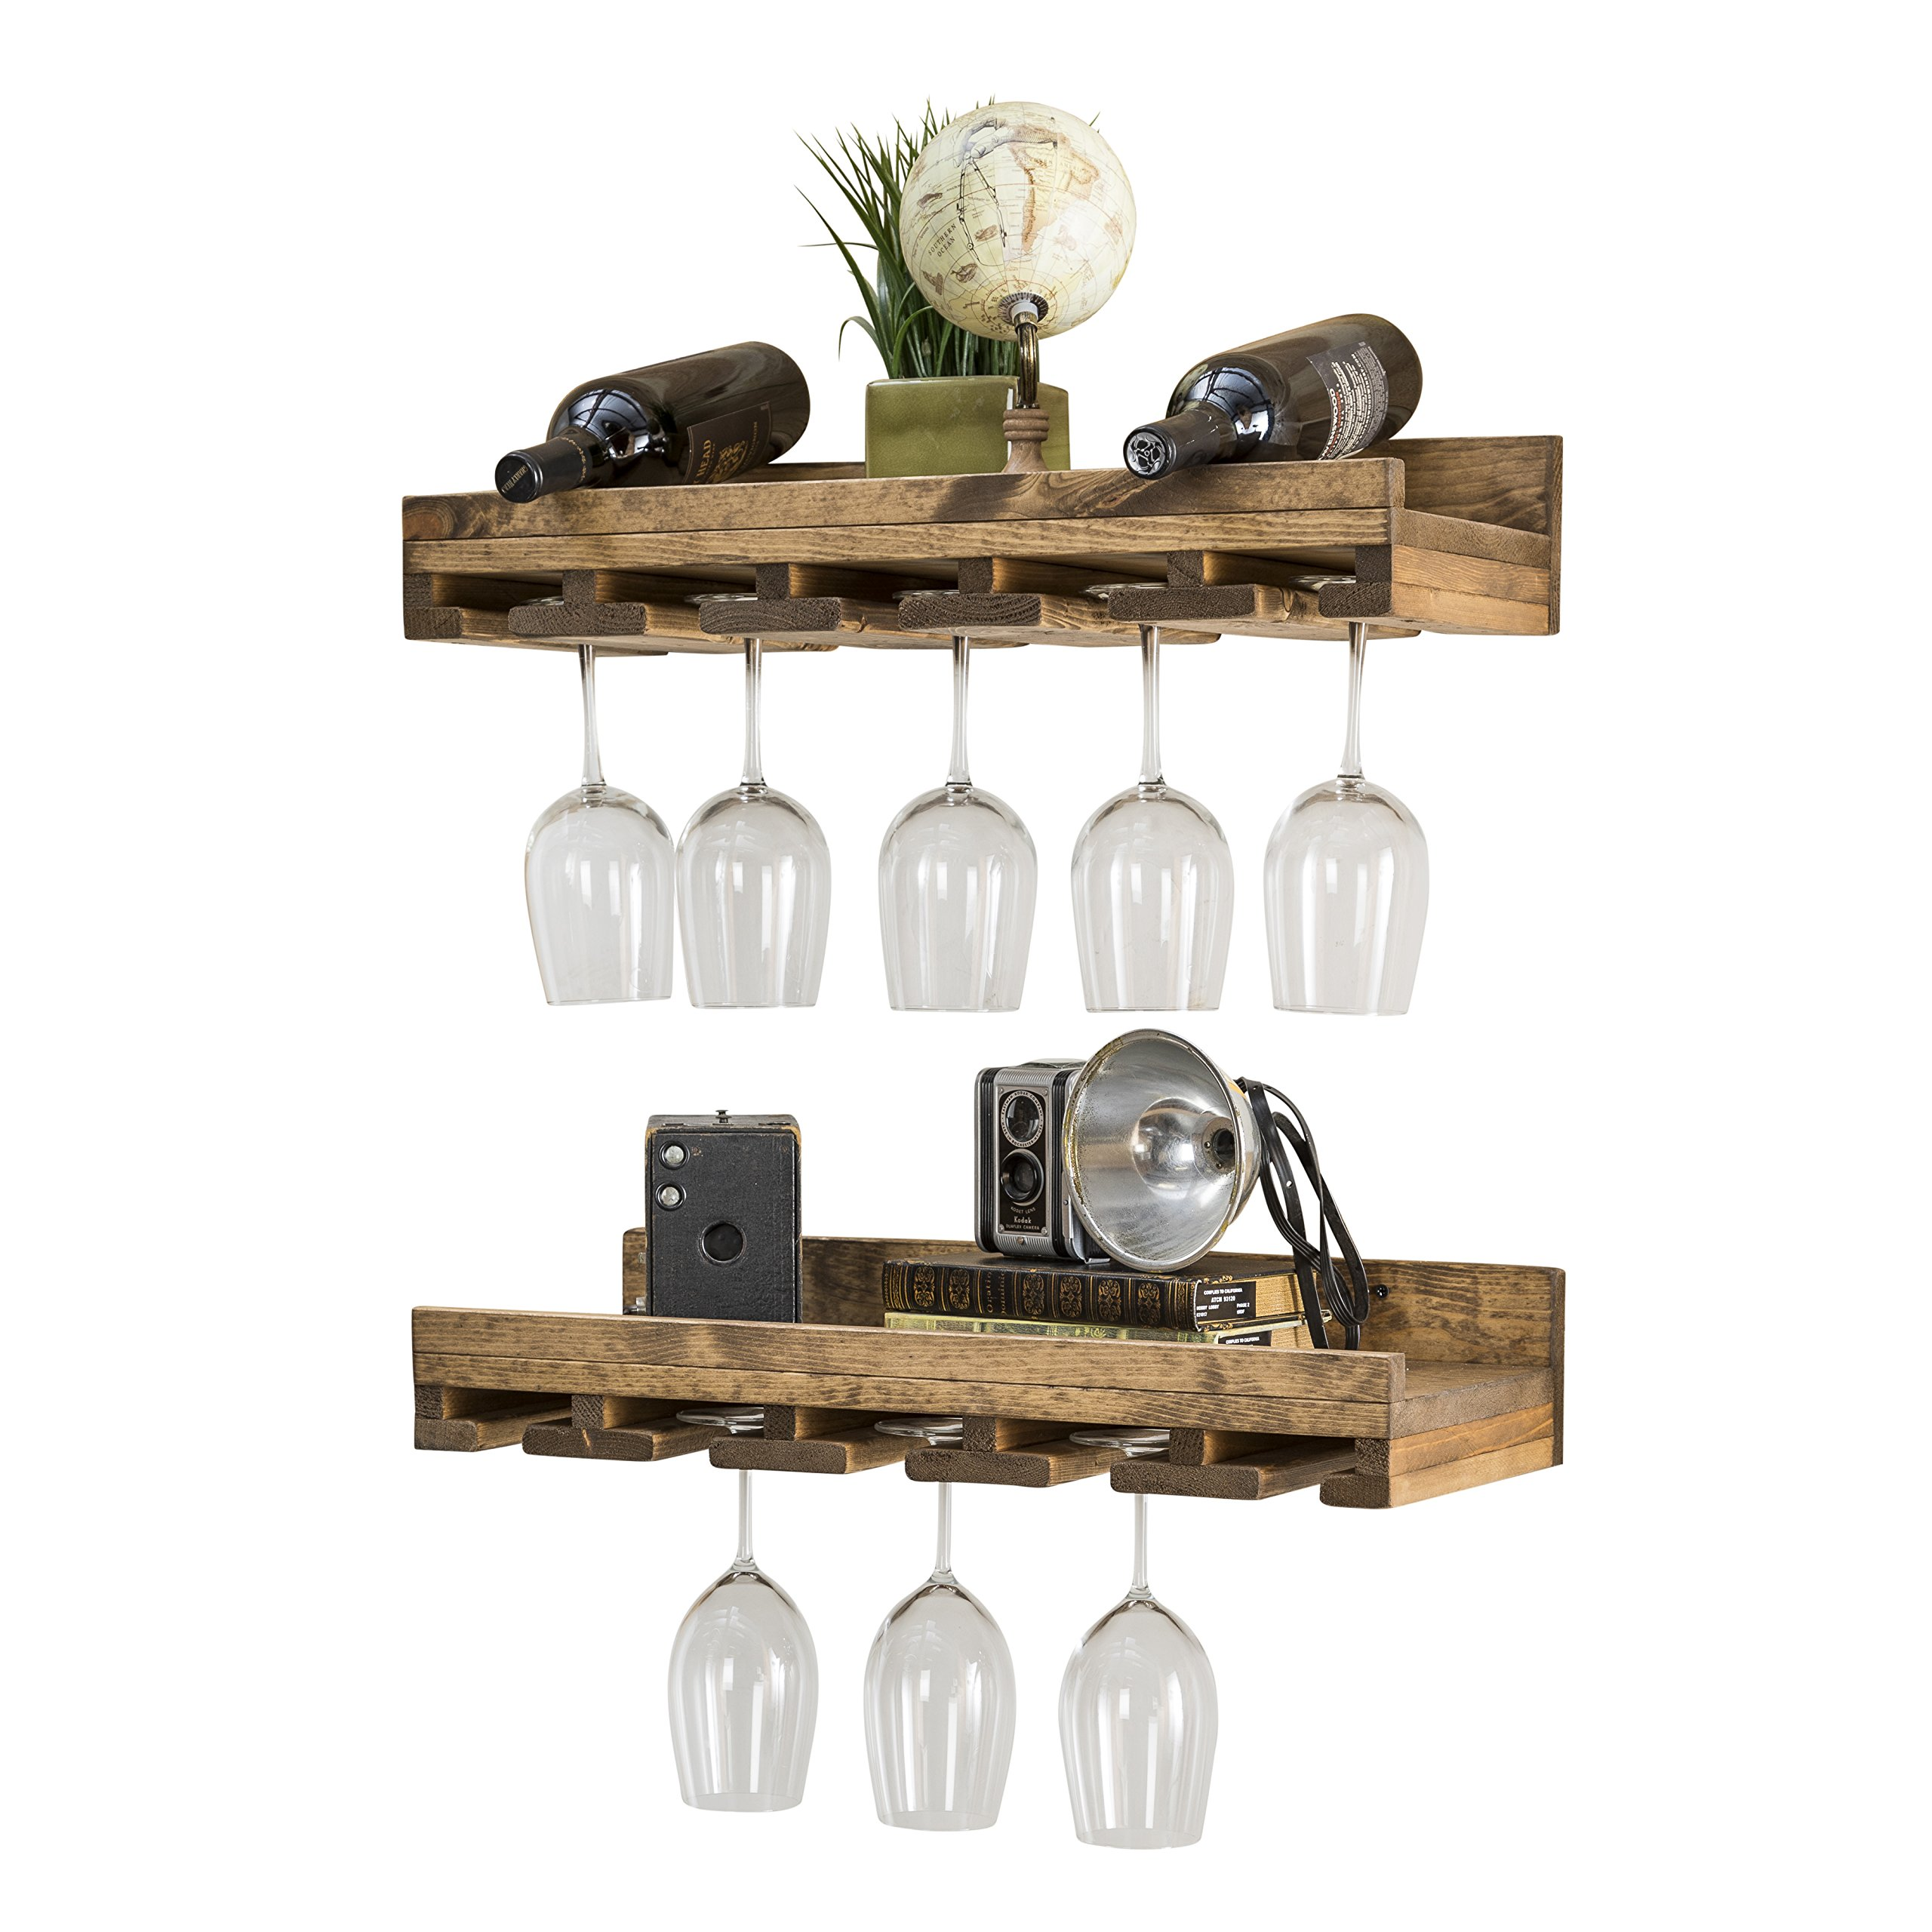 Rustic Luxe Tiered Glass Racks - del Hutson Designs, (Set of 2) Dark Walnut (2 Ft. / 24 Inch)